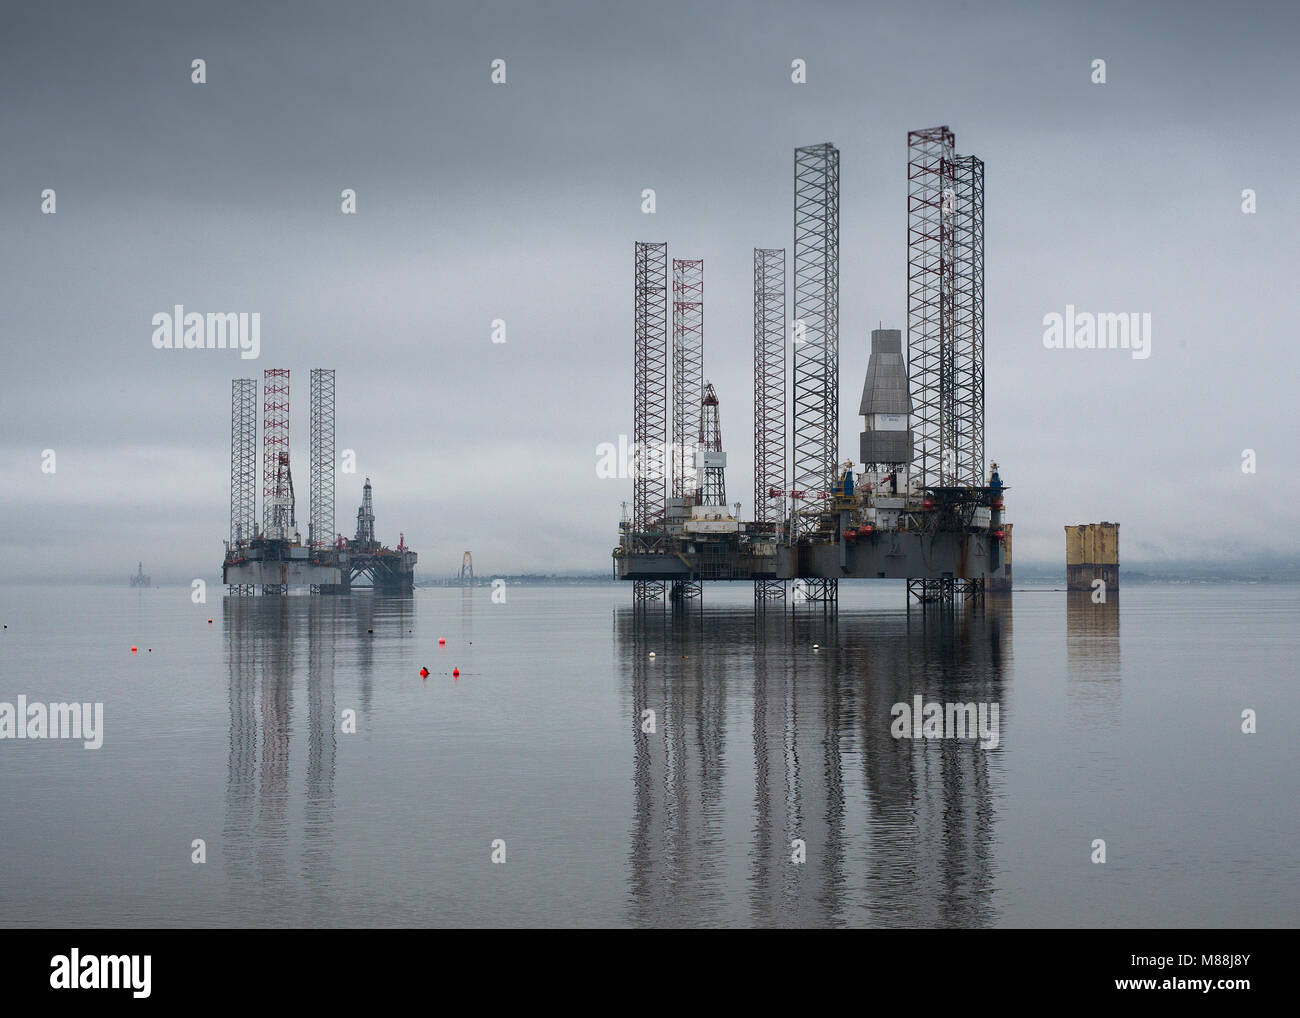 Oil rigs drilling platforms moored in Cromarty Firth viewed from town of Cromarty on the Black Isle in Ross & Cromarty, Highland Region, Scotland Stock Photo